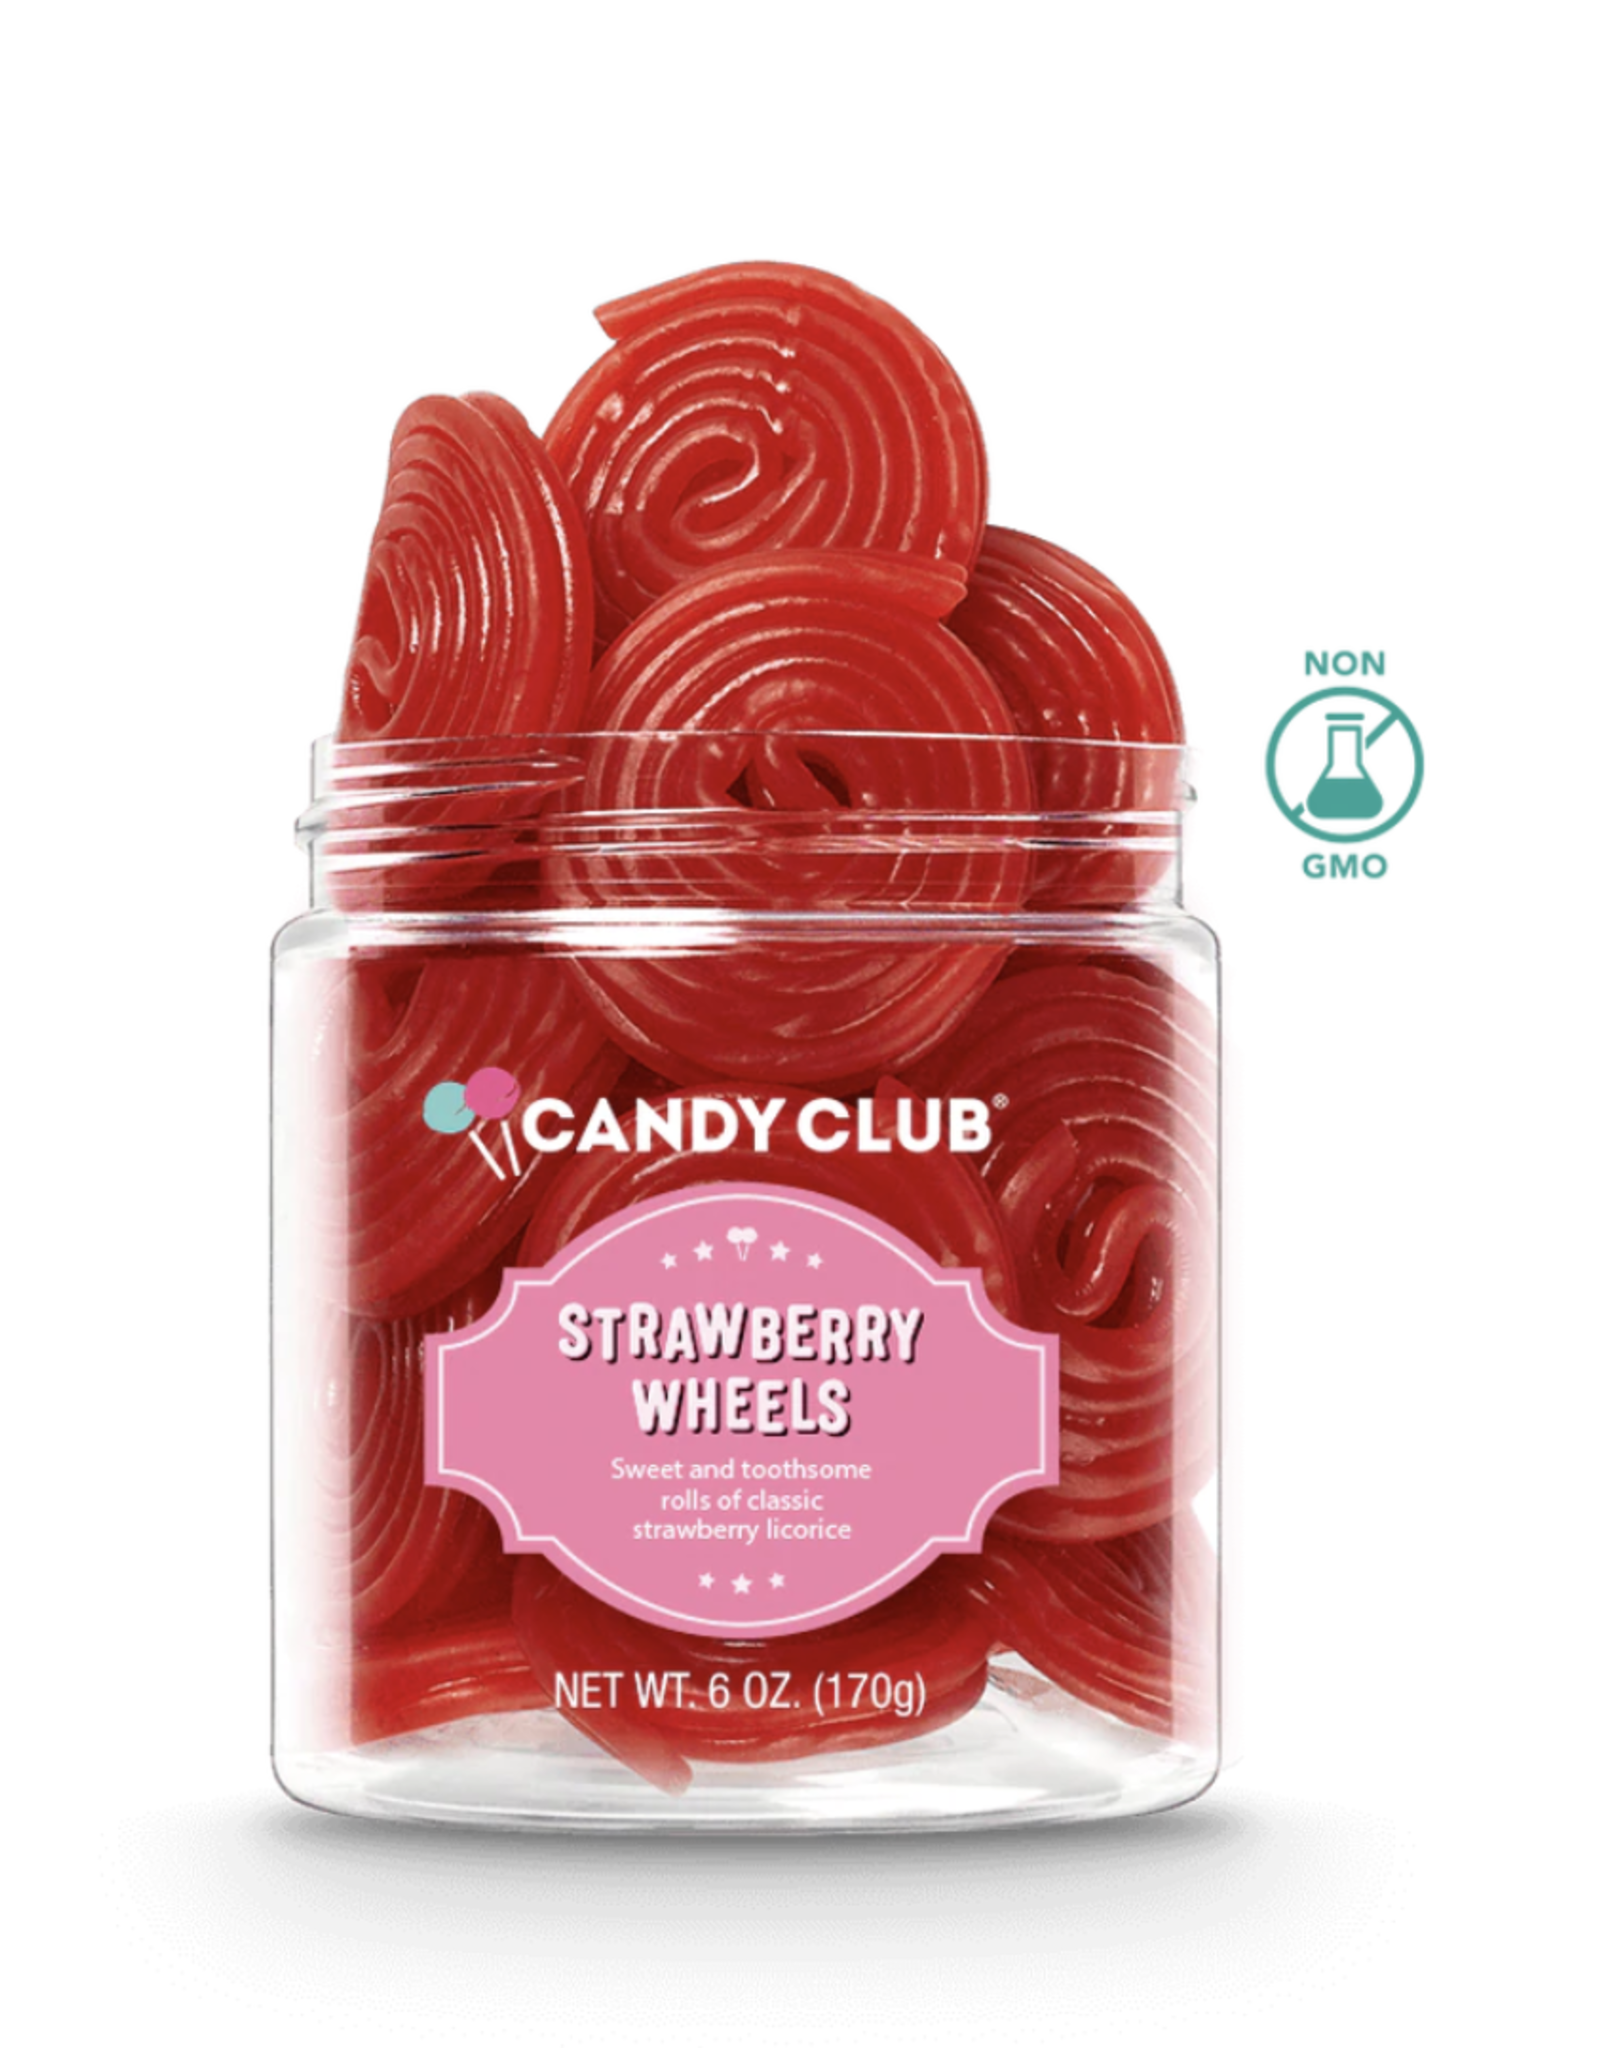 Candy Club Candy Club - Strawberry Wheels